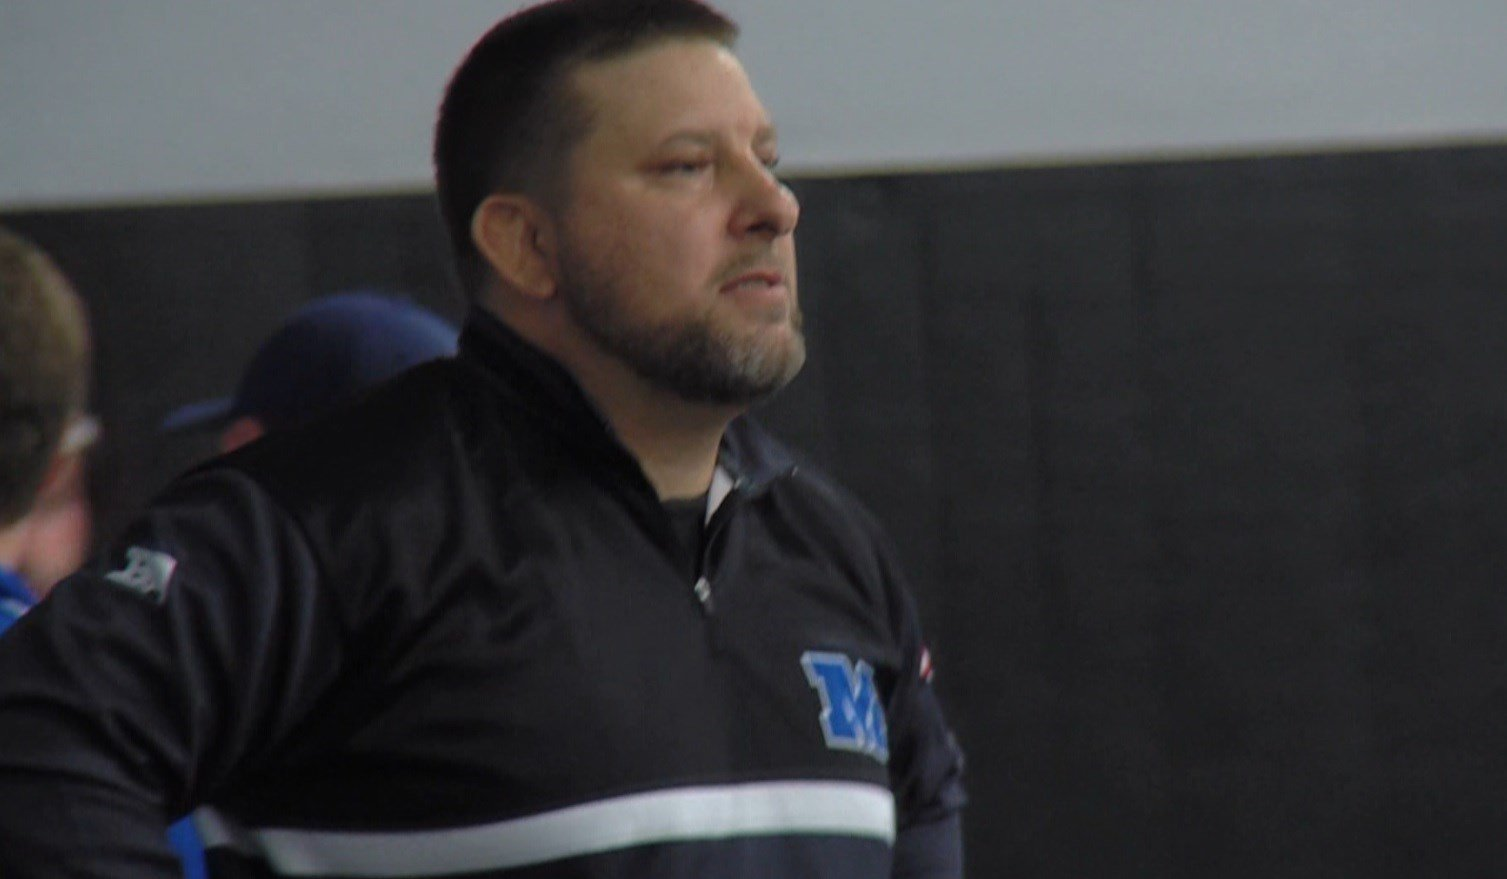 Millikin coach Ryan Birt watches on during the Big Blue's season-opening win over Hannibal-LaGrange on Thursday in Decatur.